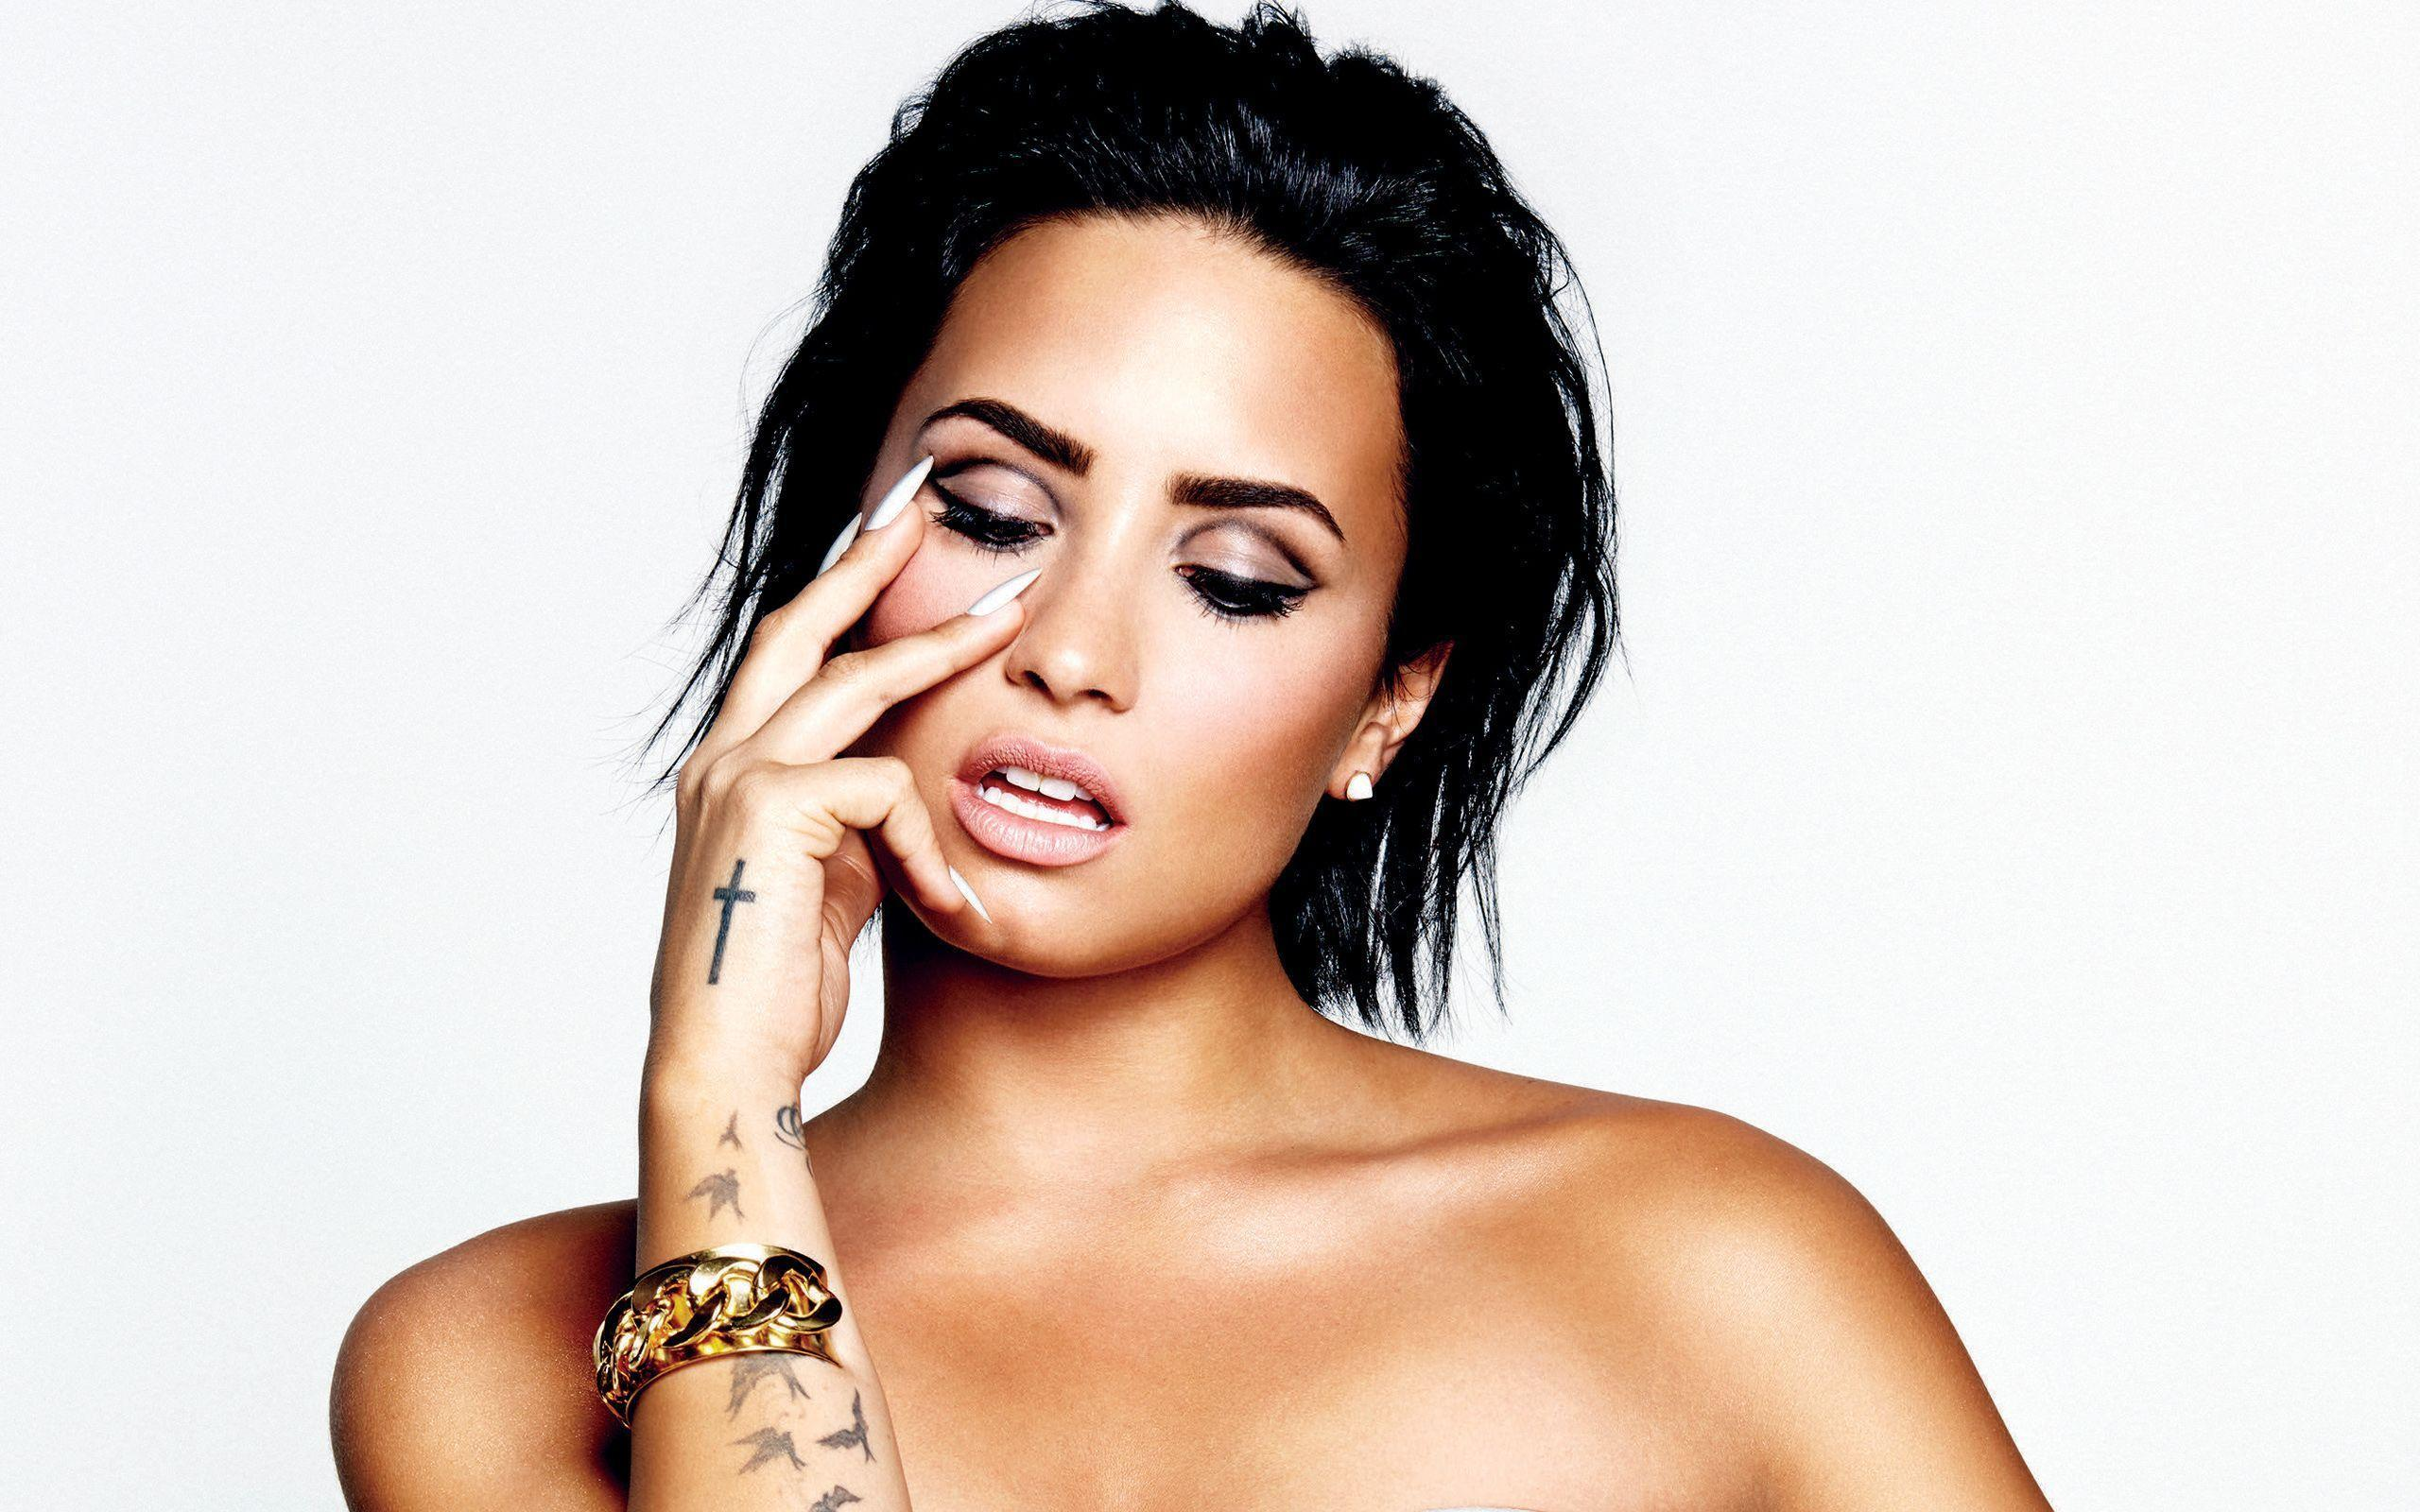 demi lovato hd wallpapers 2016 - wallpaper cave